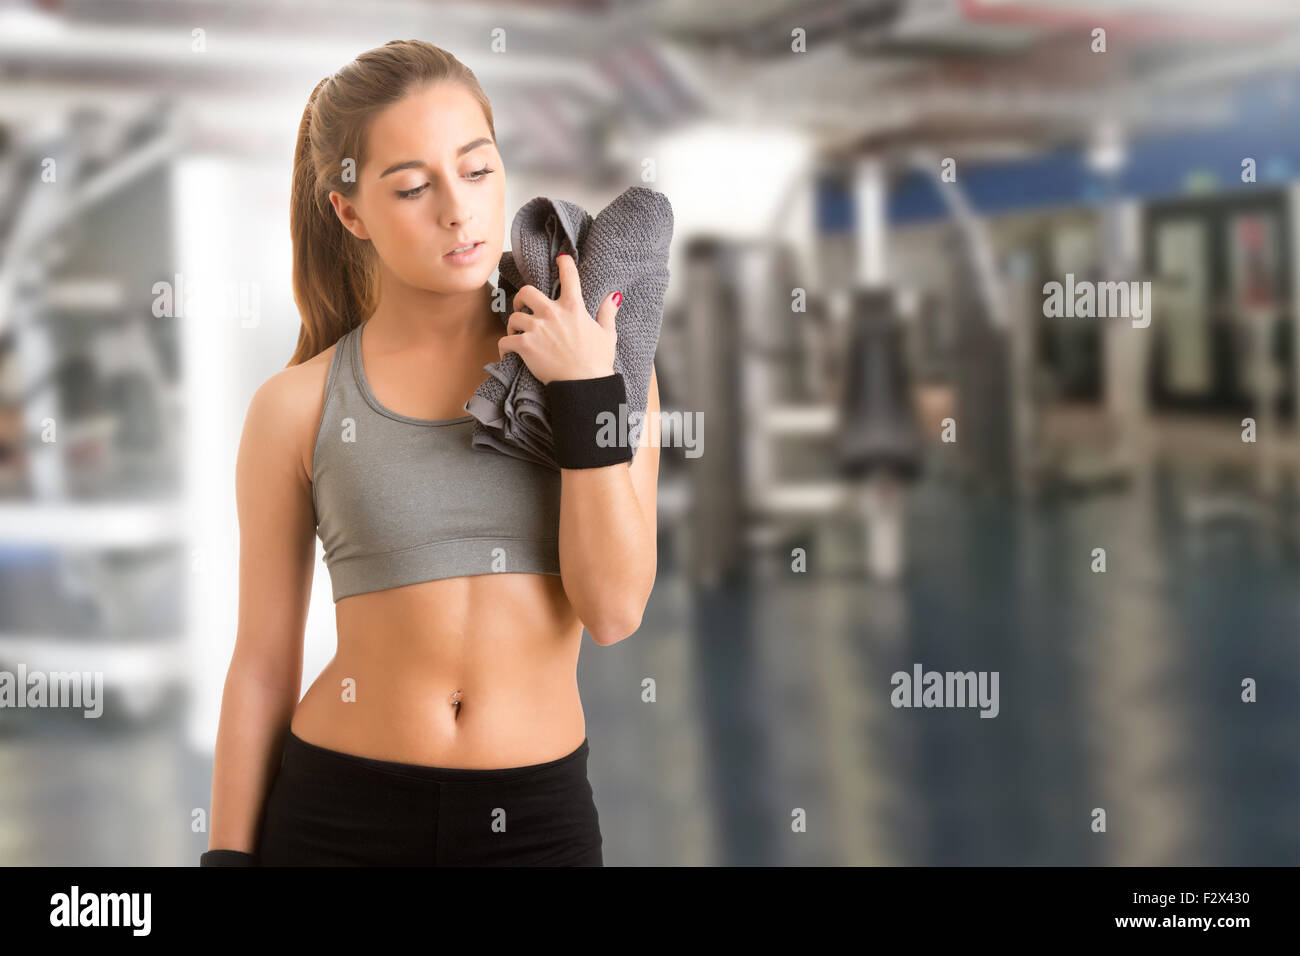 Woman resting with a towel around her neck after a fitness workout in a gym - Stock Image